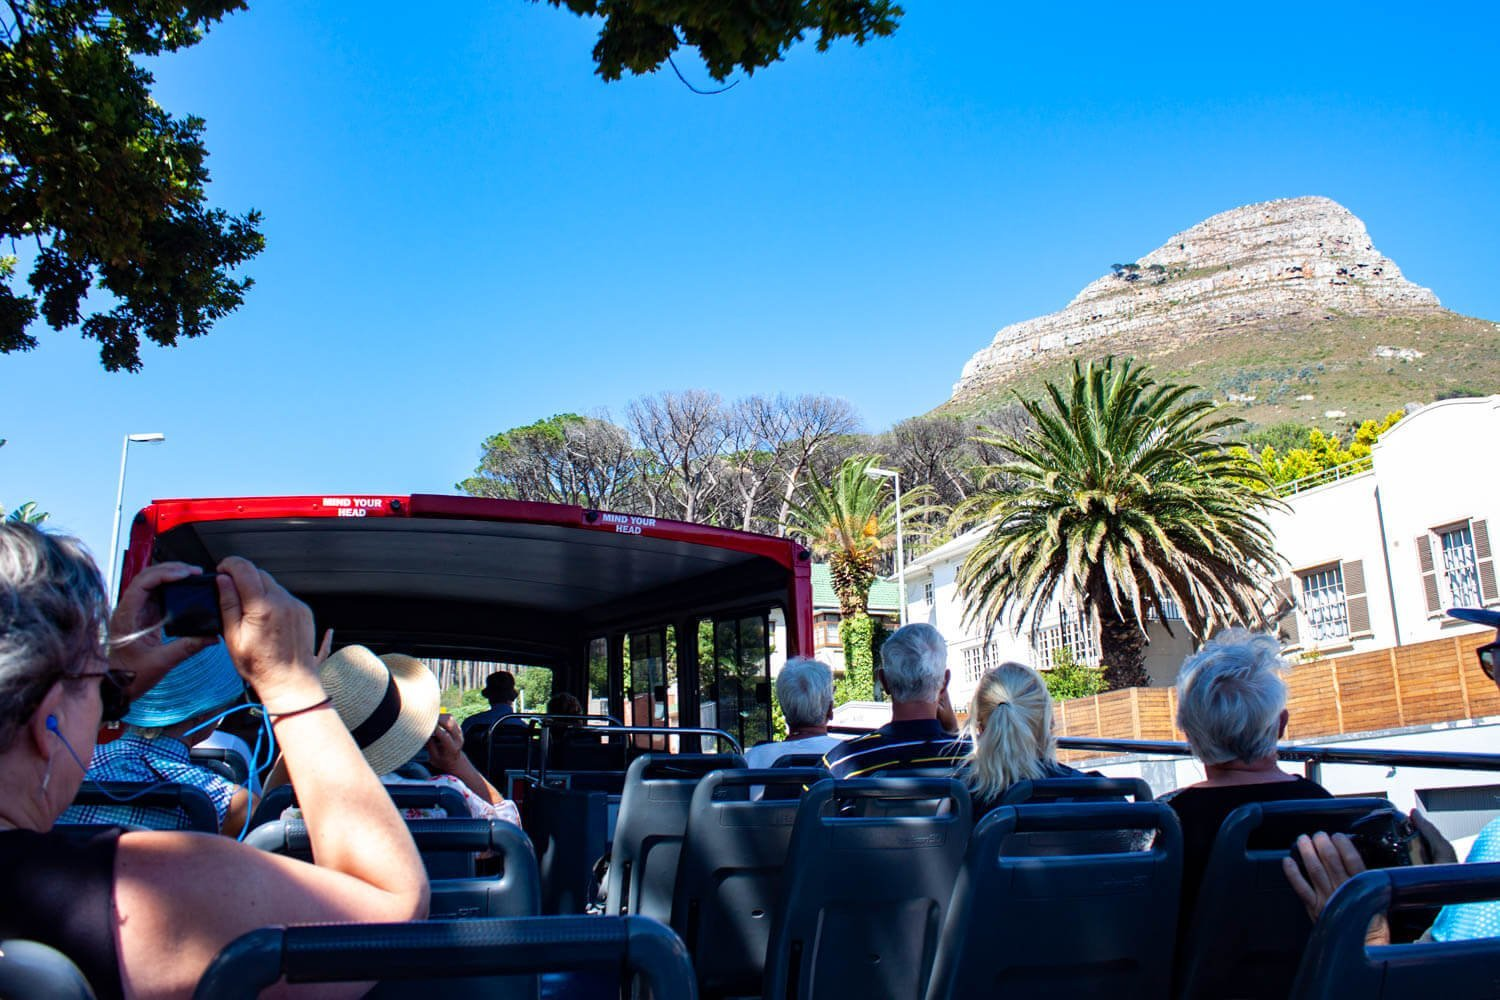 Tourists looking at Lions Head from the hop on hop off bus